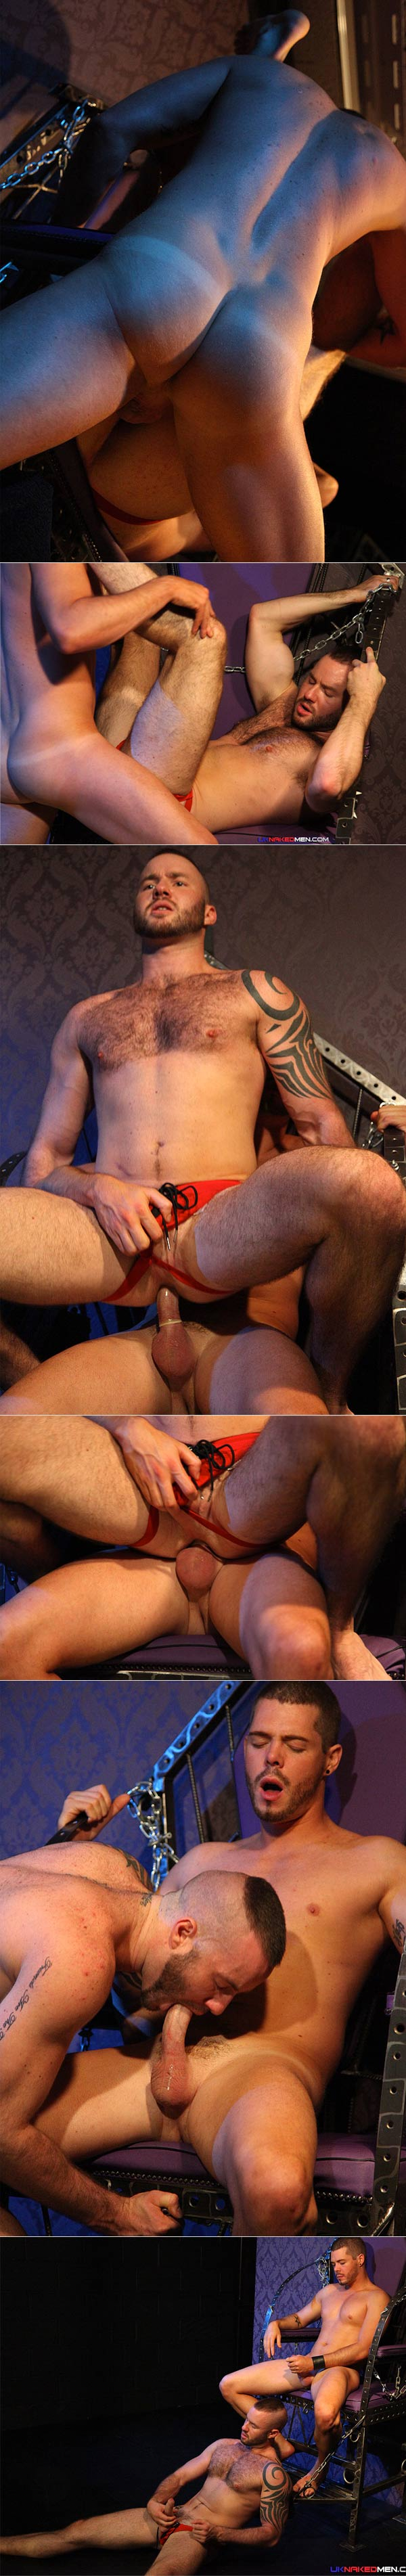 Riding The Pole (Justin King & Dominic North) at UKNakedMen